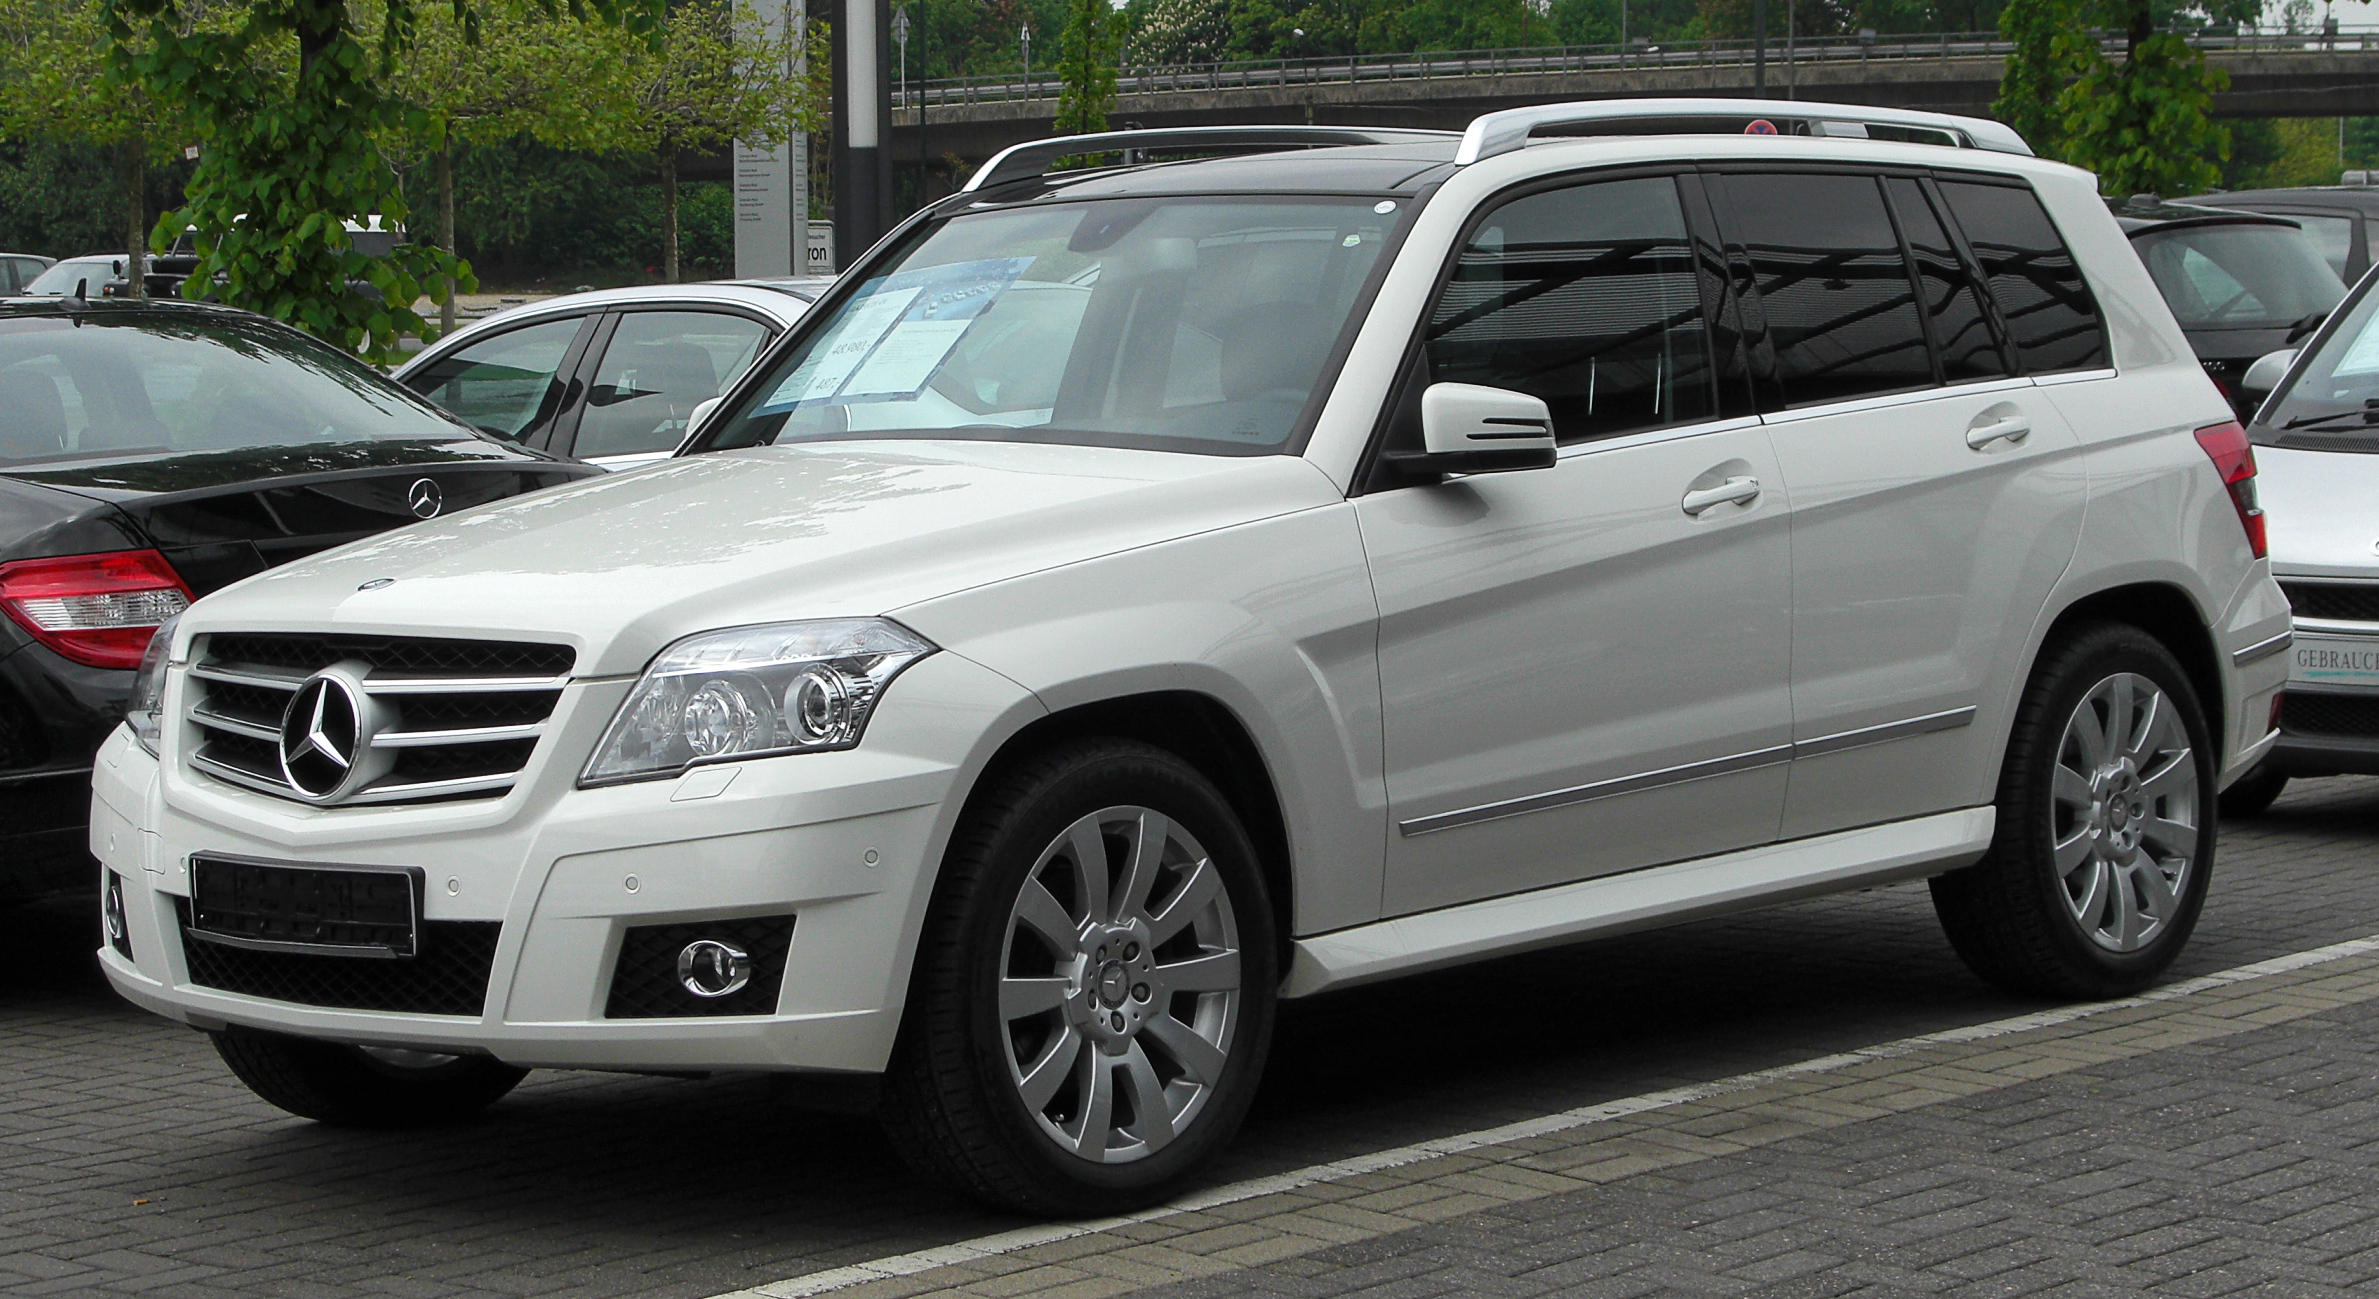 file mercedes glk 350 cdi 4matic front wikipedia. Black Bedroom Furniture Sets. Home Design Ideas